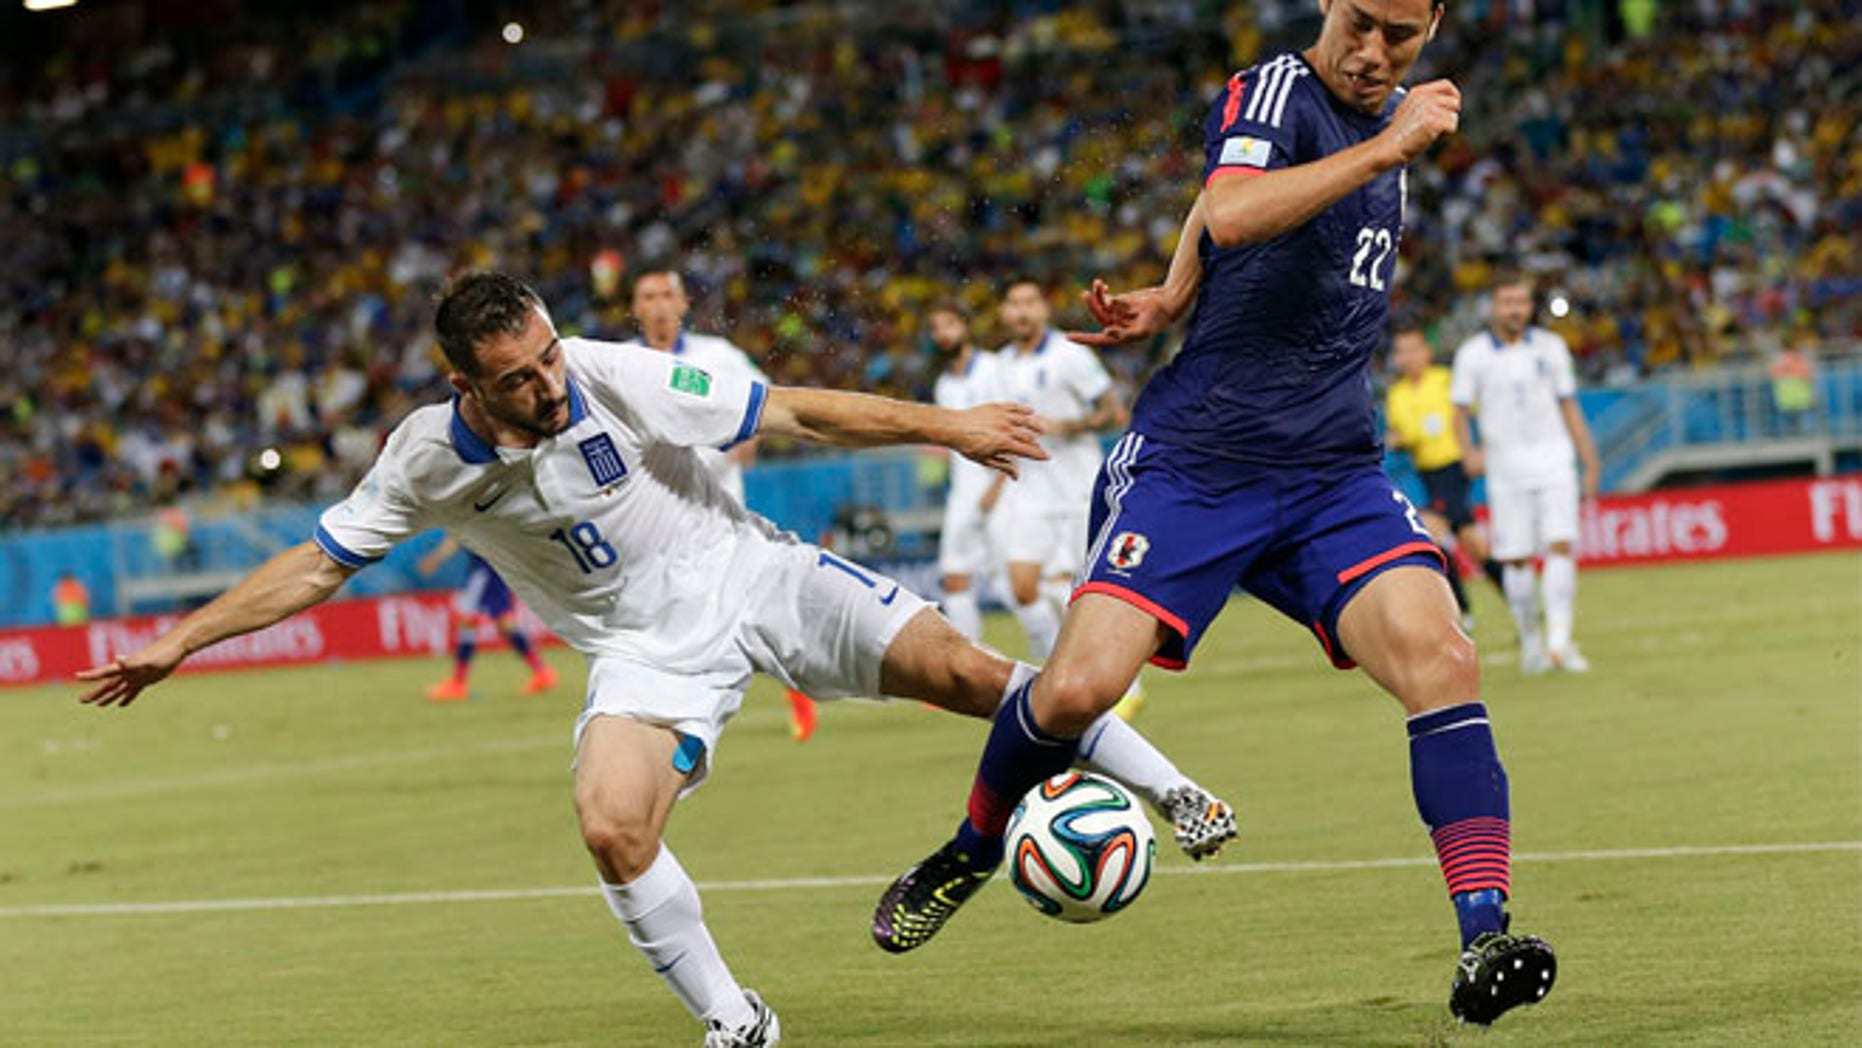 June 19, 2014: Greece's Giannis Fetfatzidis, left, challenges Japan's Maya Yoshida during the group C World Cup soccer match between Japan and Greece at the Arena das Dunas in Natal, Brazil.